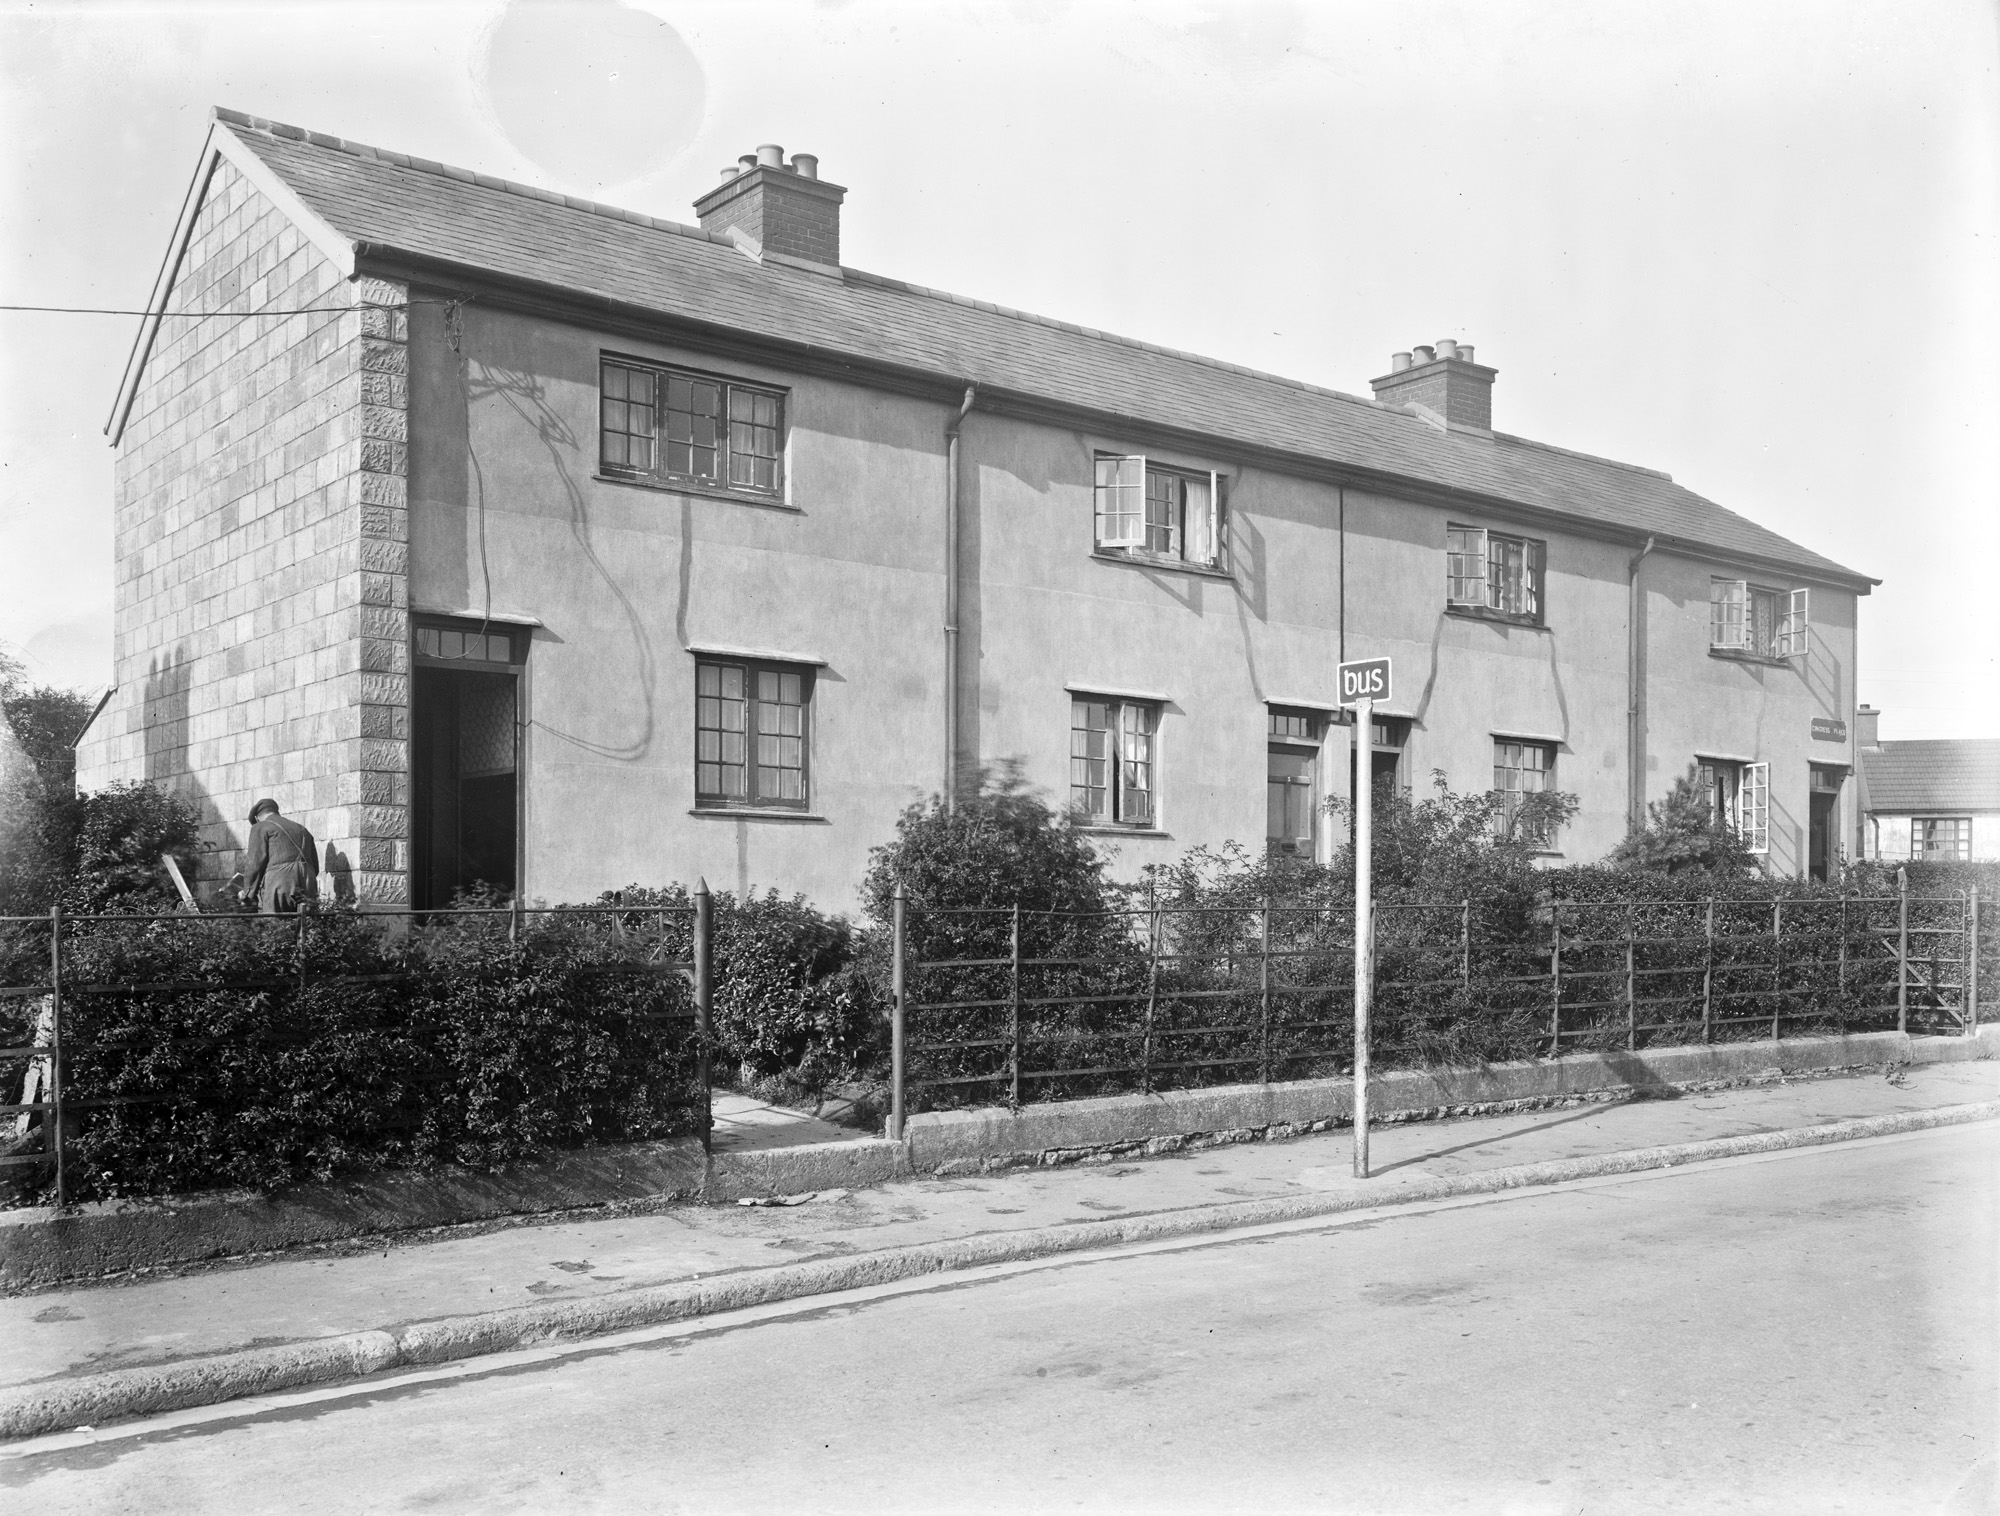 Nos 4 to 1, Congress Place, British Legion Houses, Waterford